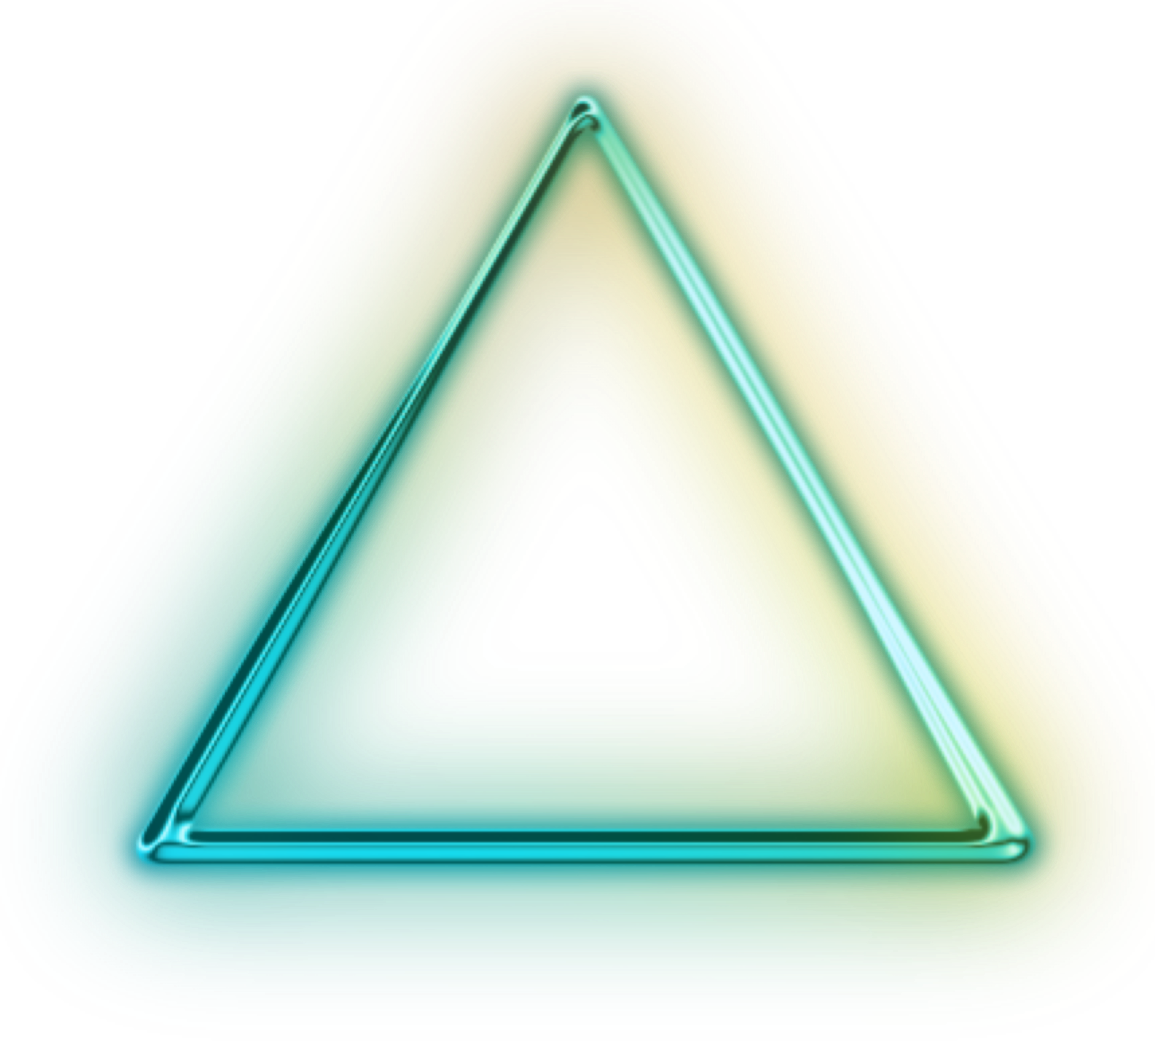 green neon triangle png #41362